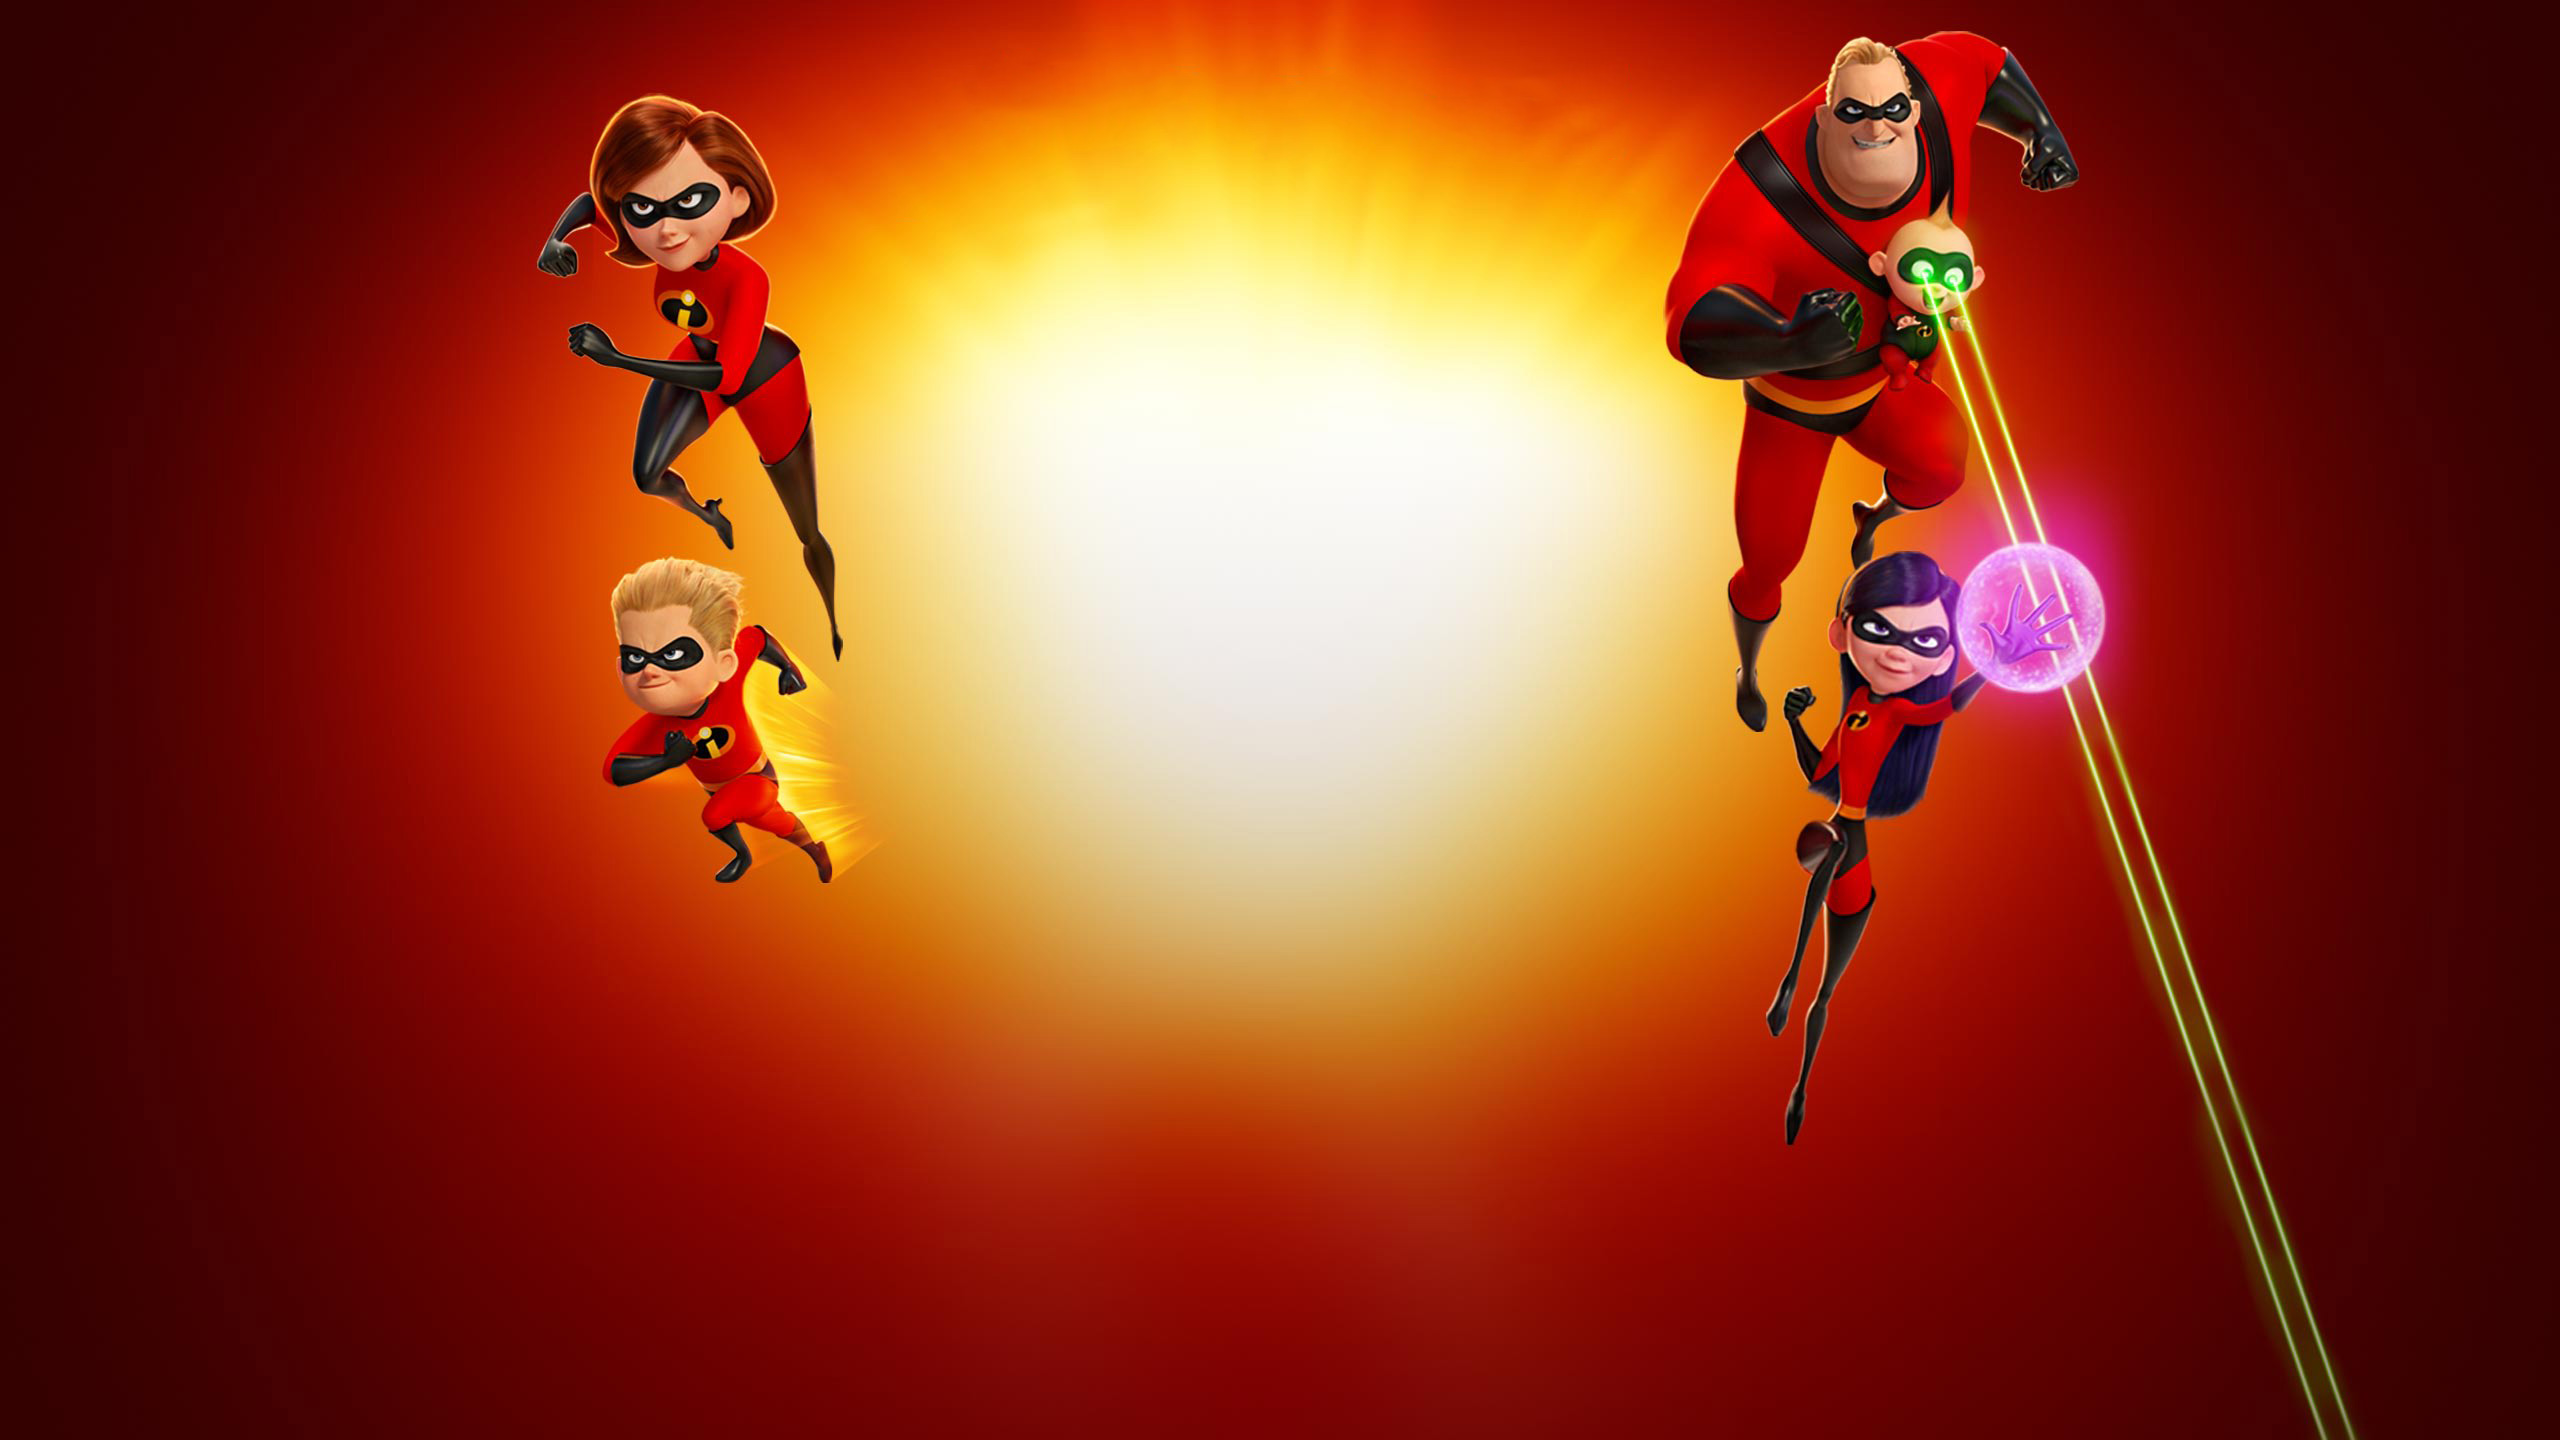 Incredible Ii Wallpaper Free: The Incredibles 2 Movie Poster, HD Movies, 4k Wallpapers